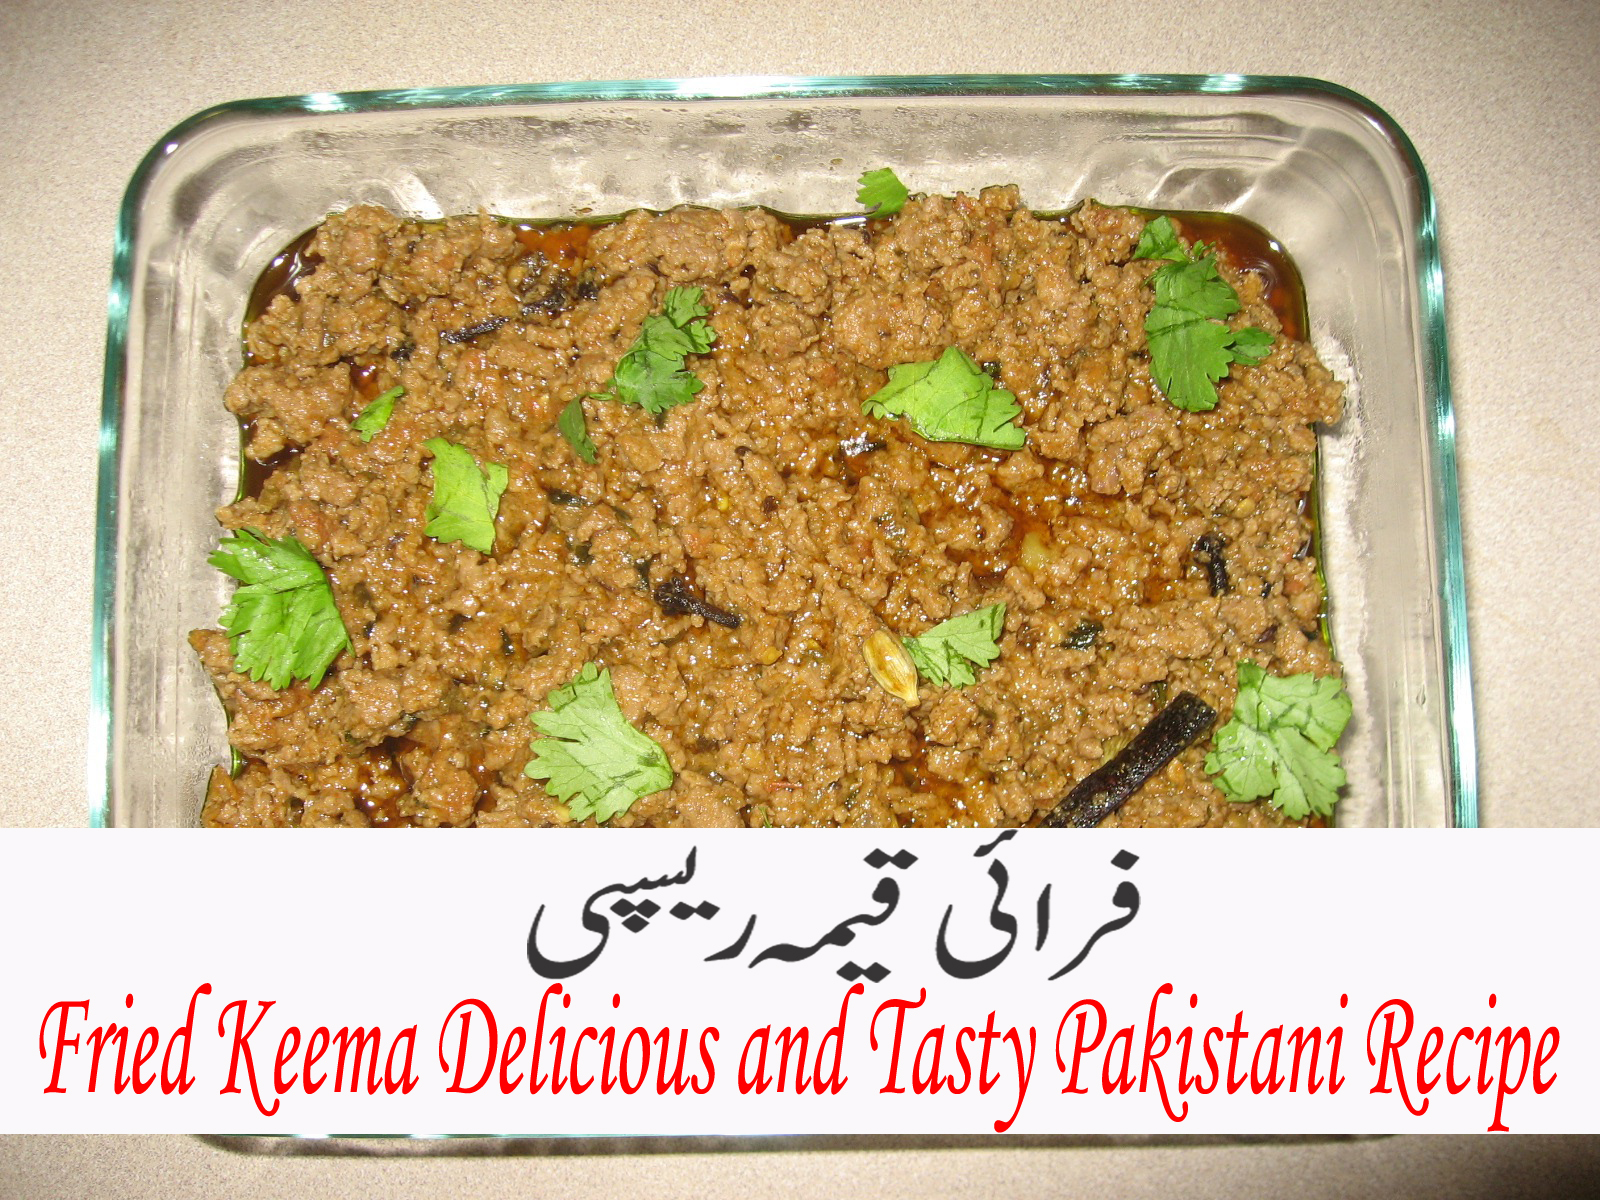 Fried Keema Delicious and Tasty Pakistani Recipe